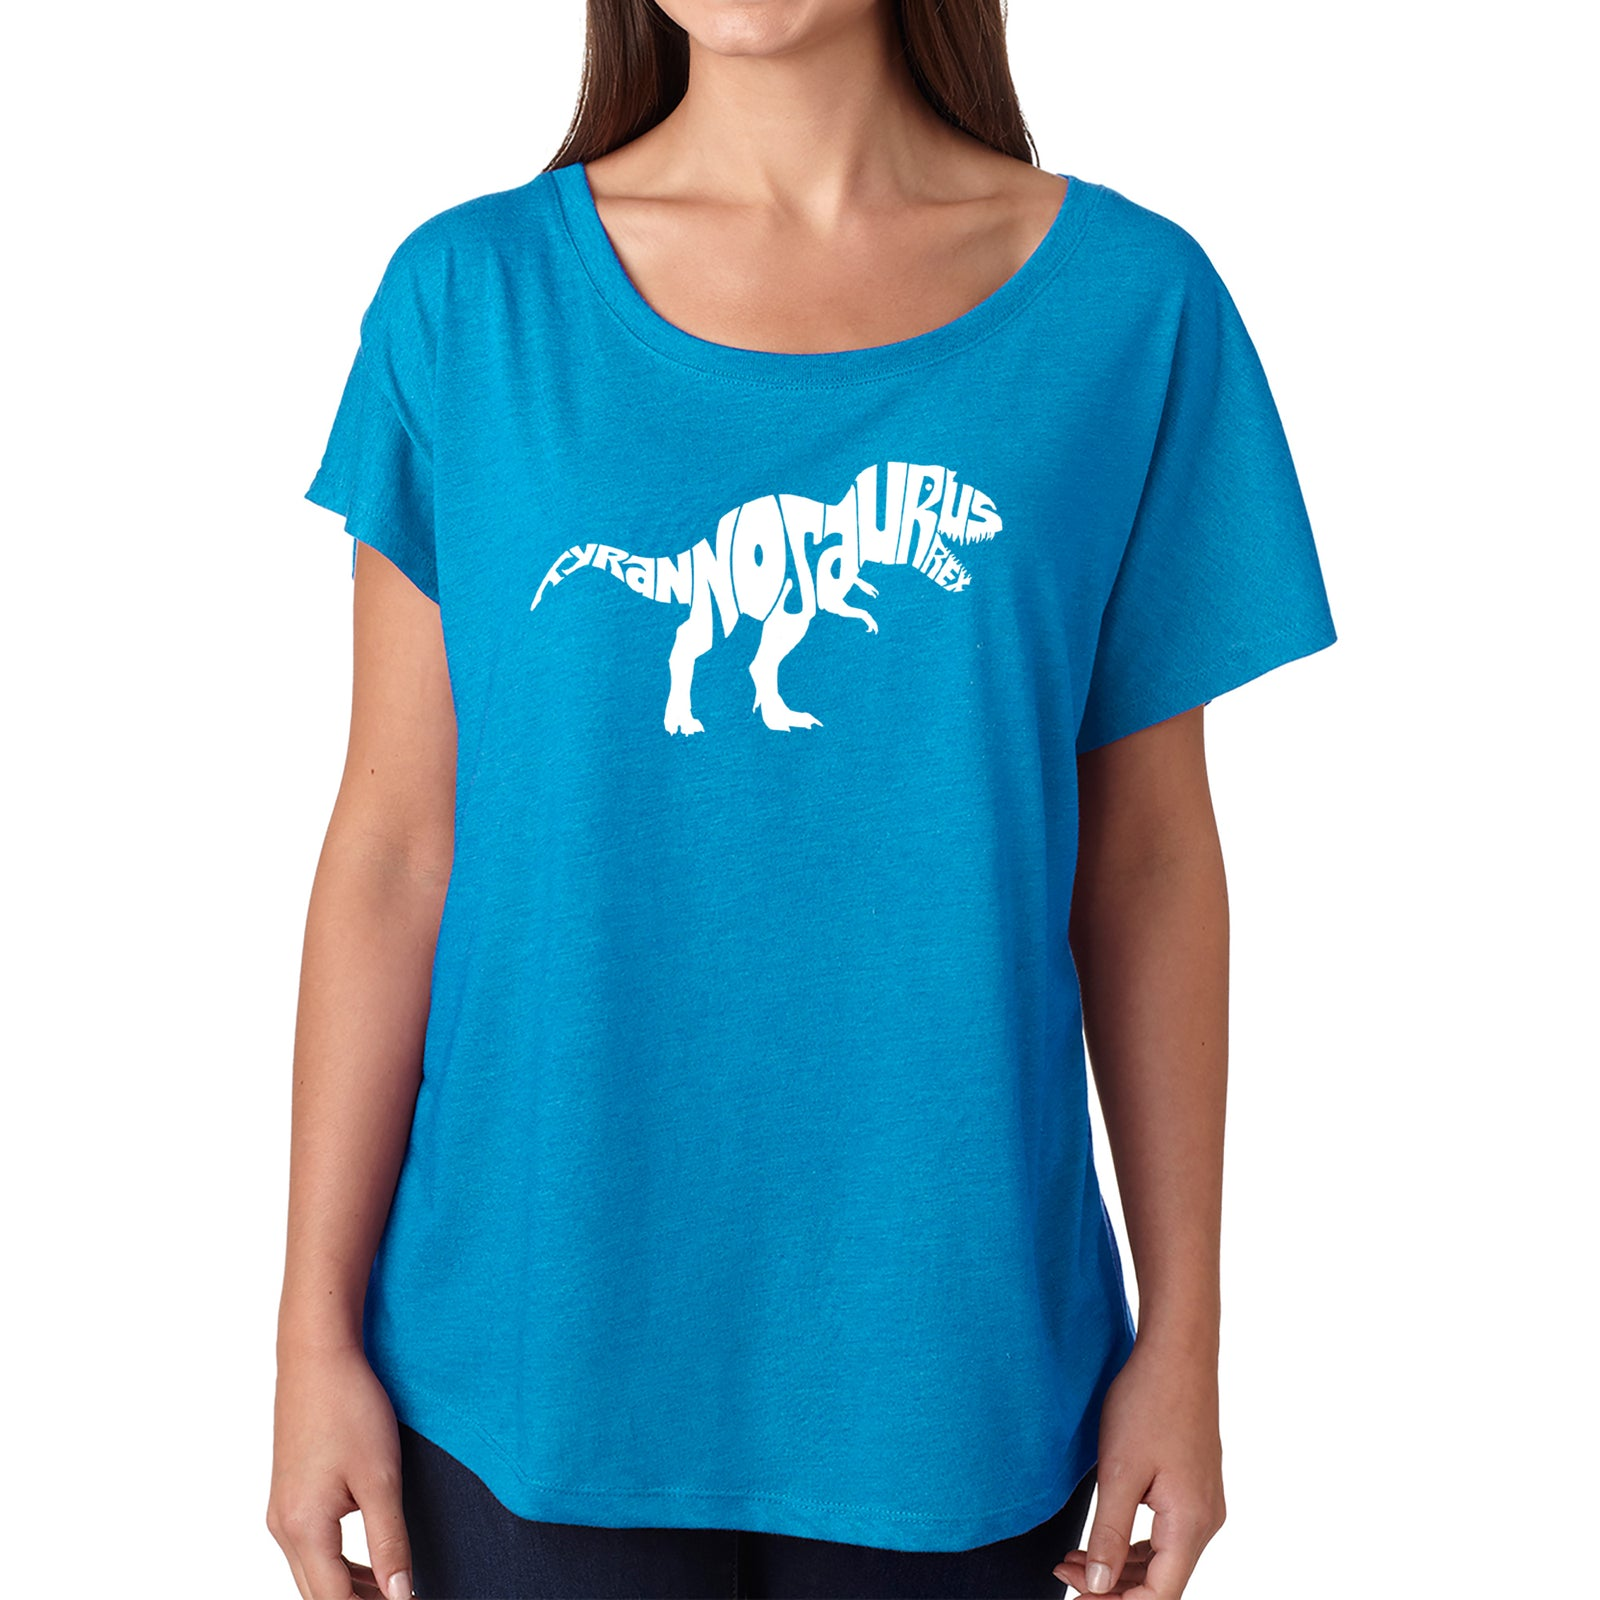 Women's Loose Fit Dolman Cut Word Art Shirt - TYRANNOSAURUS REX